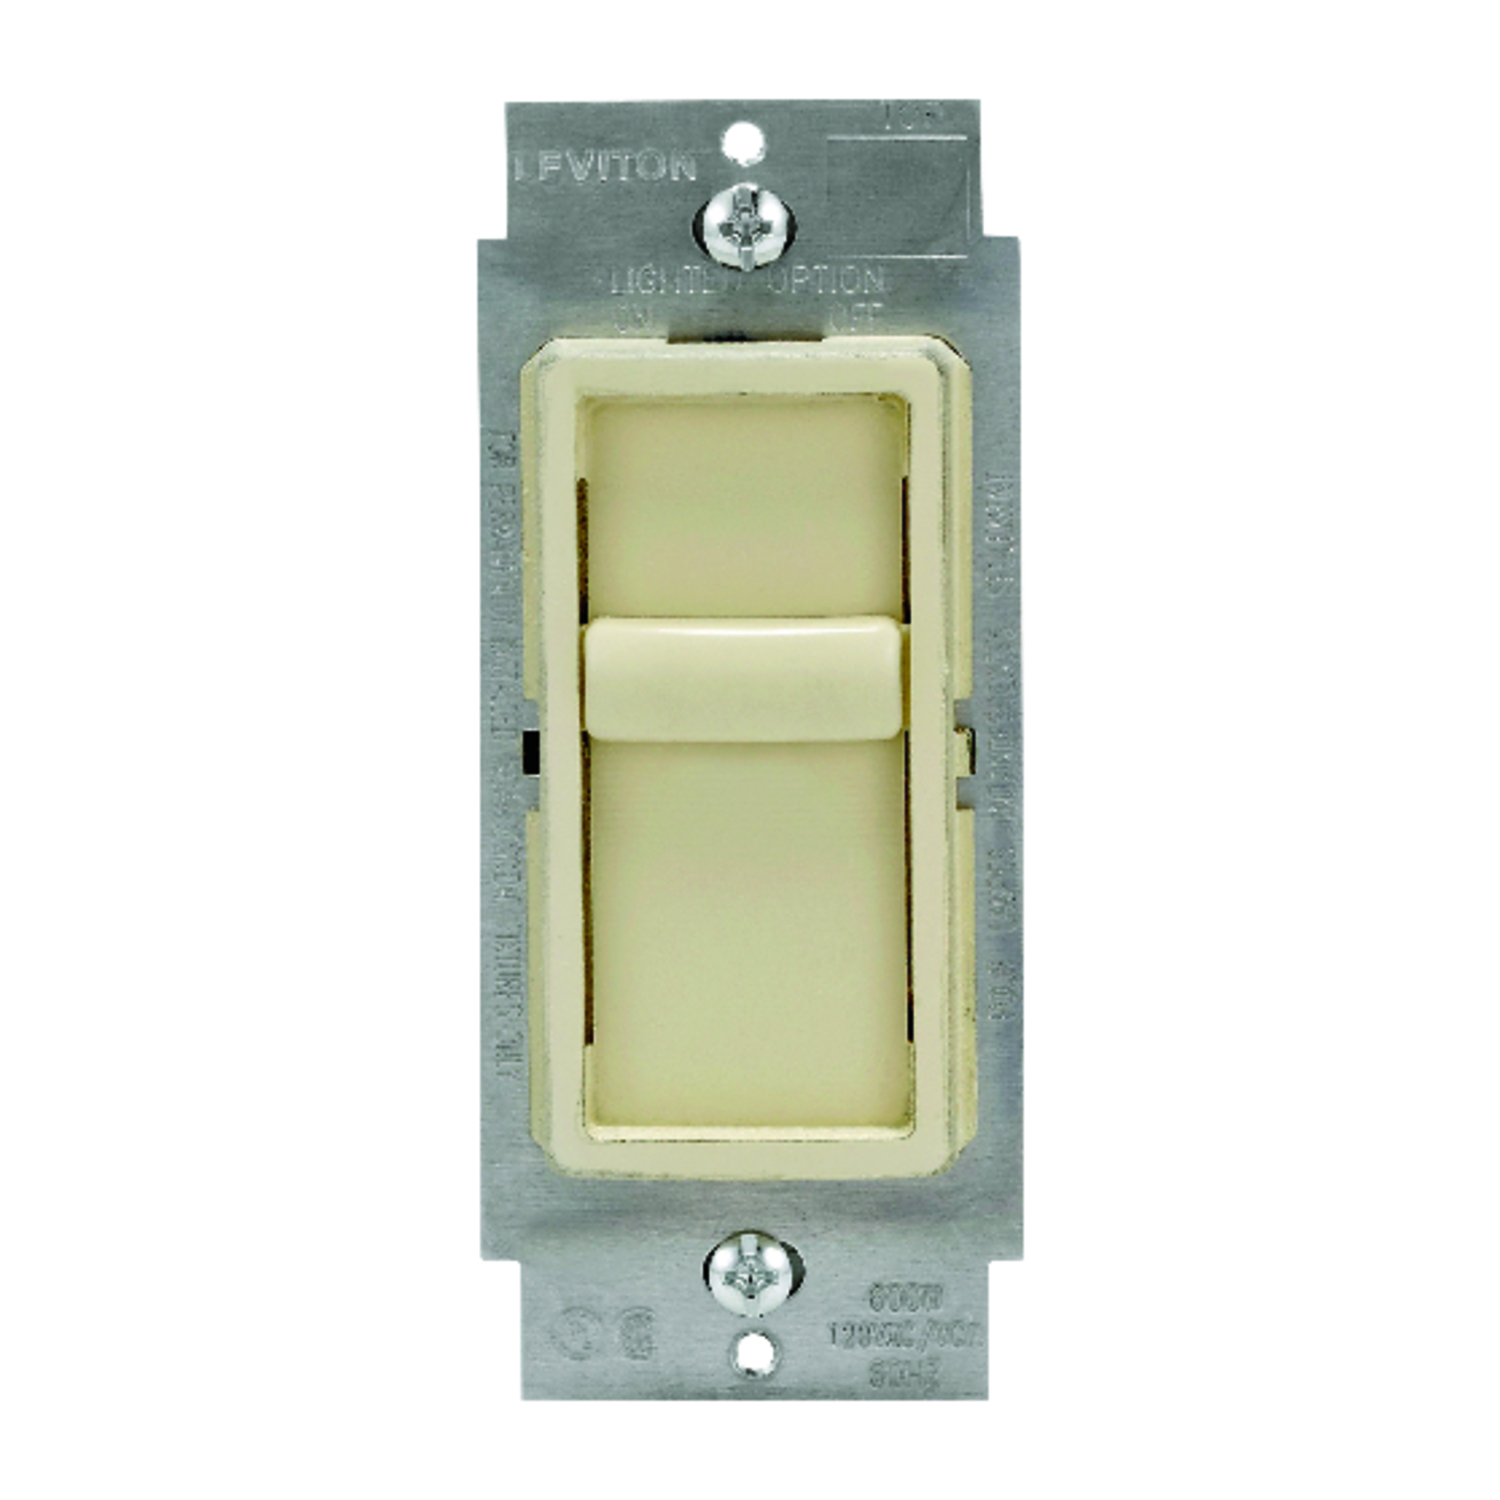 Leviton  SureSlide  Ivory  150 watts Slide  Dimmer Switch  1